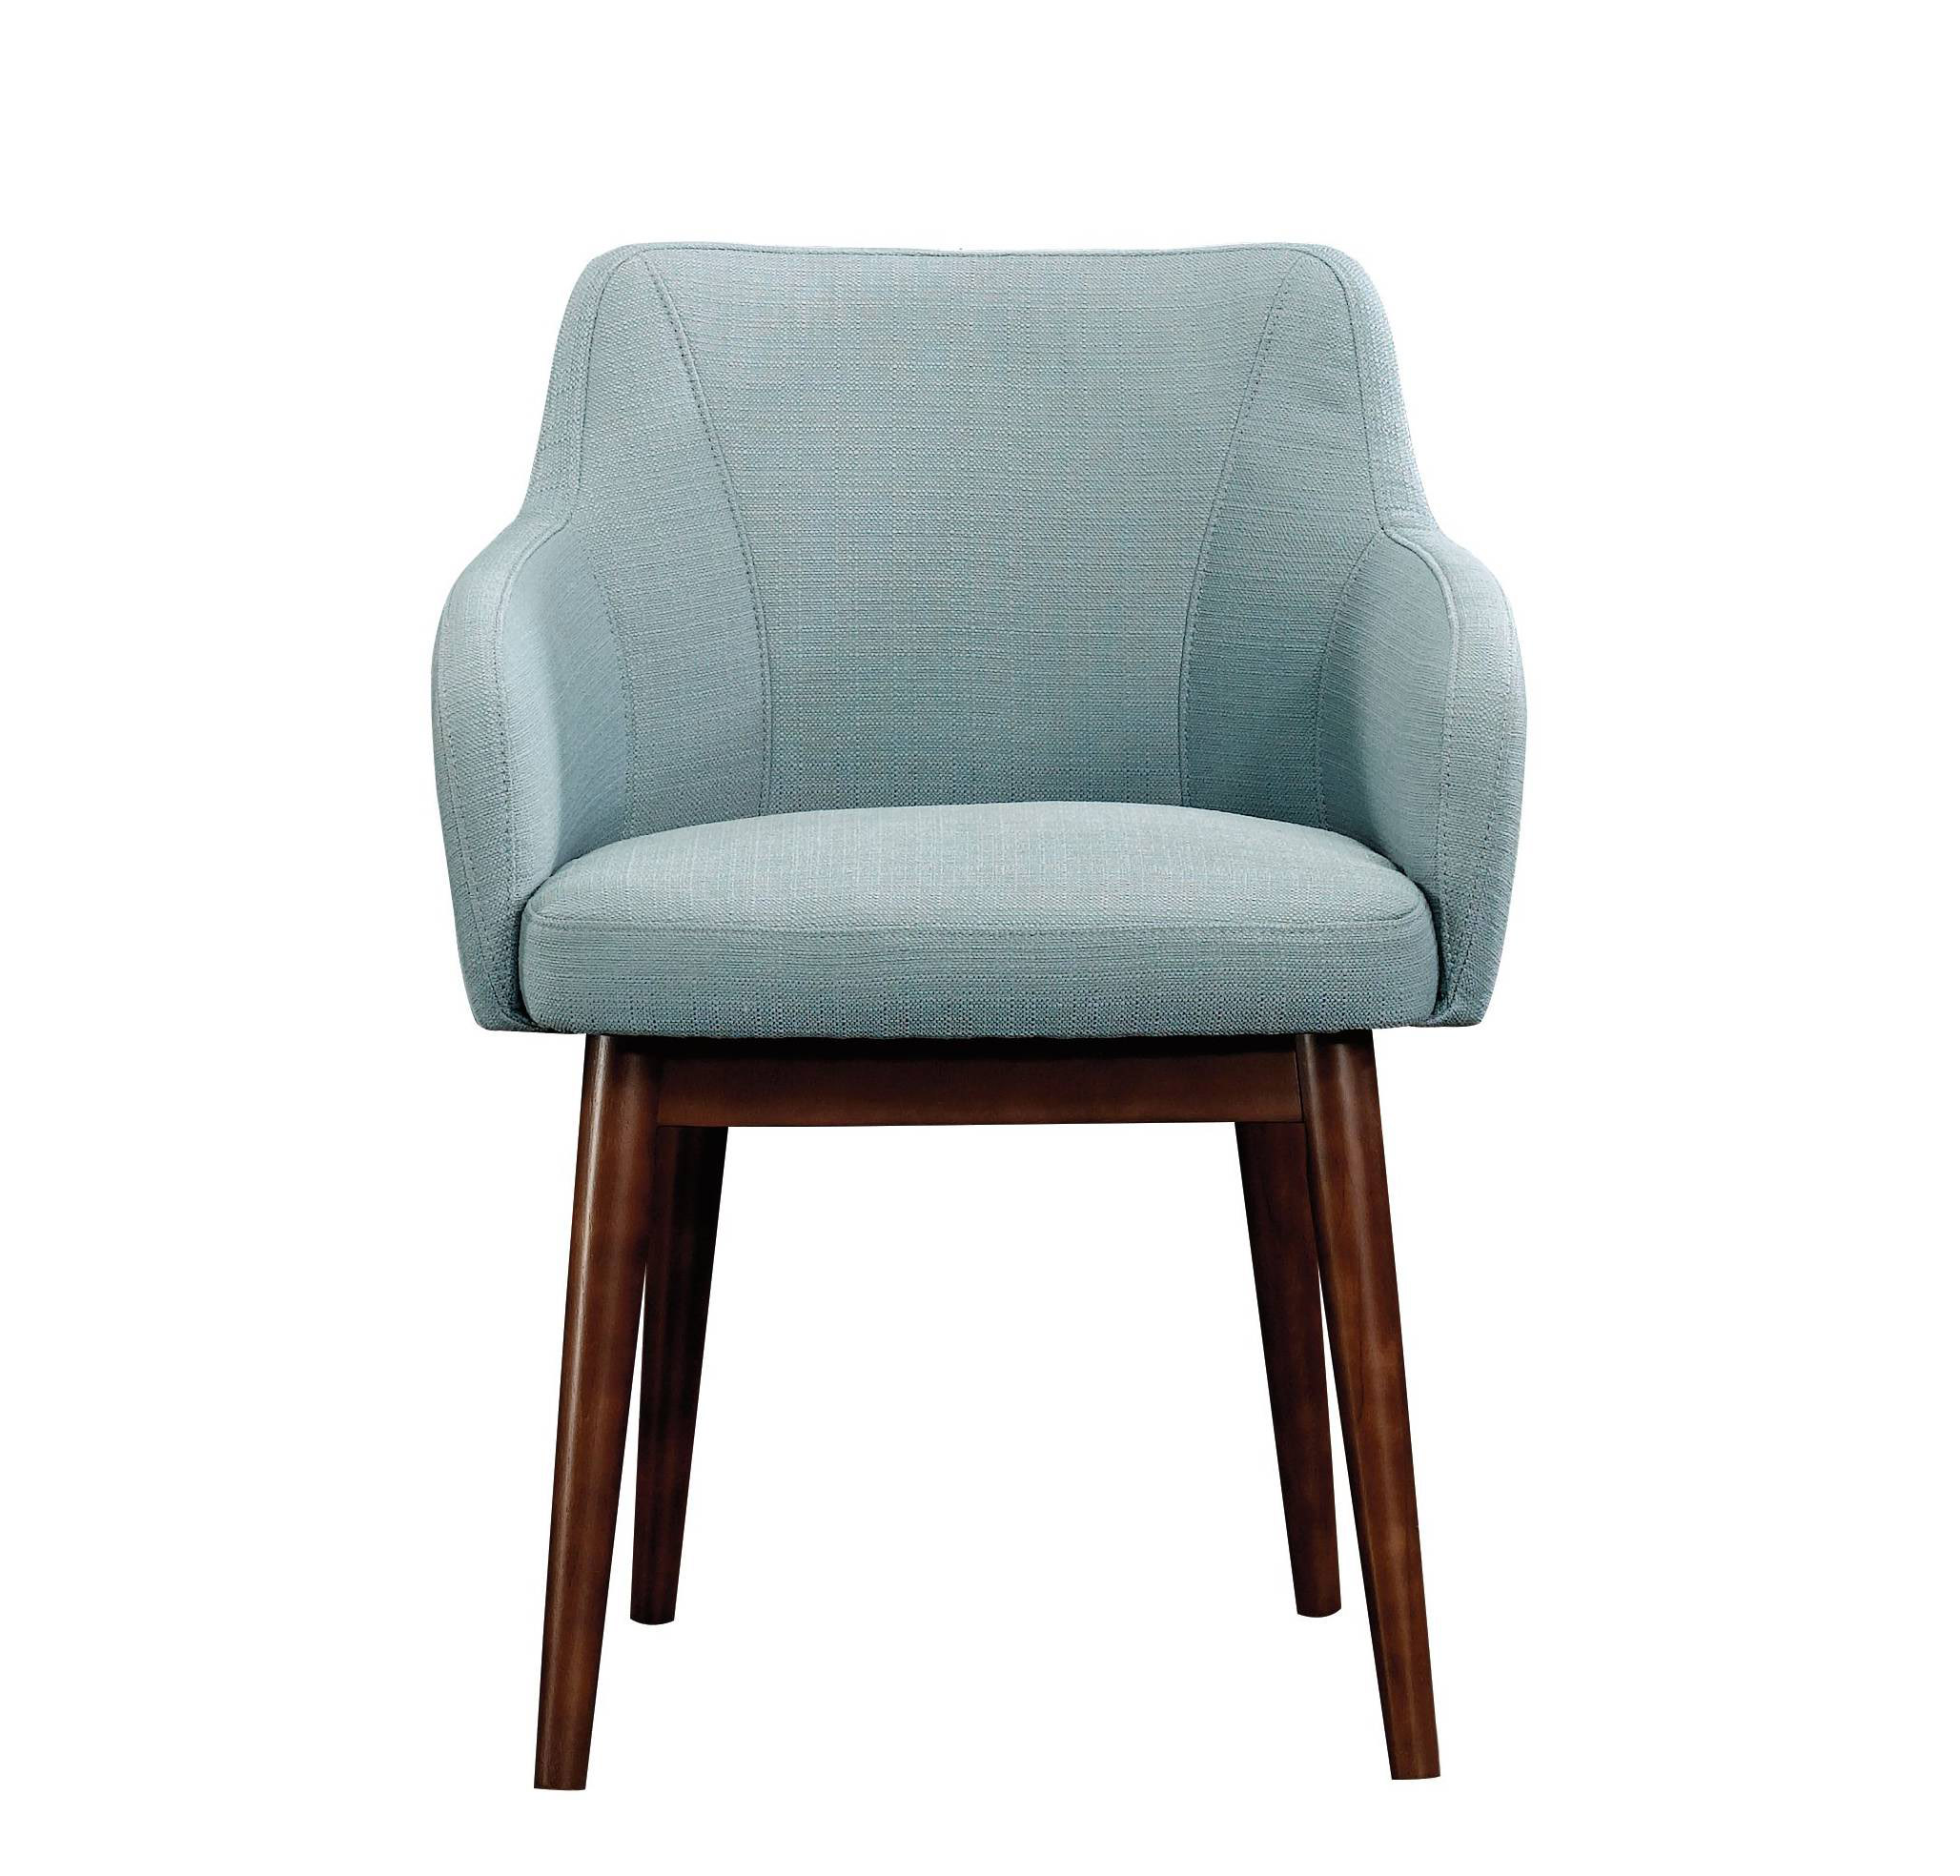 Mixville Modern Anywhere Chair  sc 1 st  Apartment Therapy & The Best Living Room u0026 Accent Chairs Under $200 | Apartment Therapy